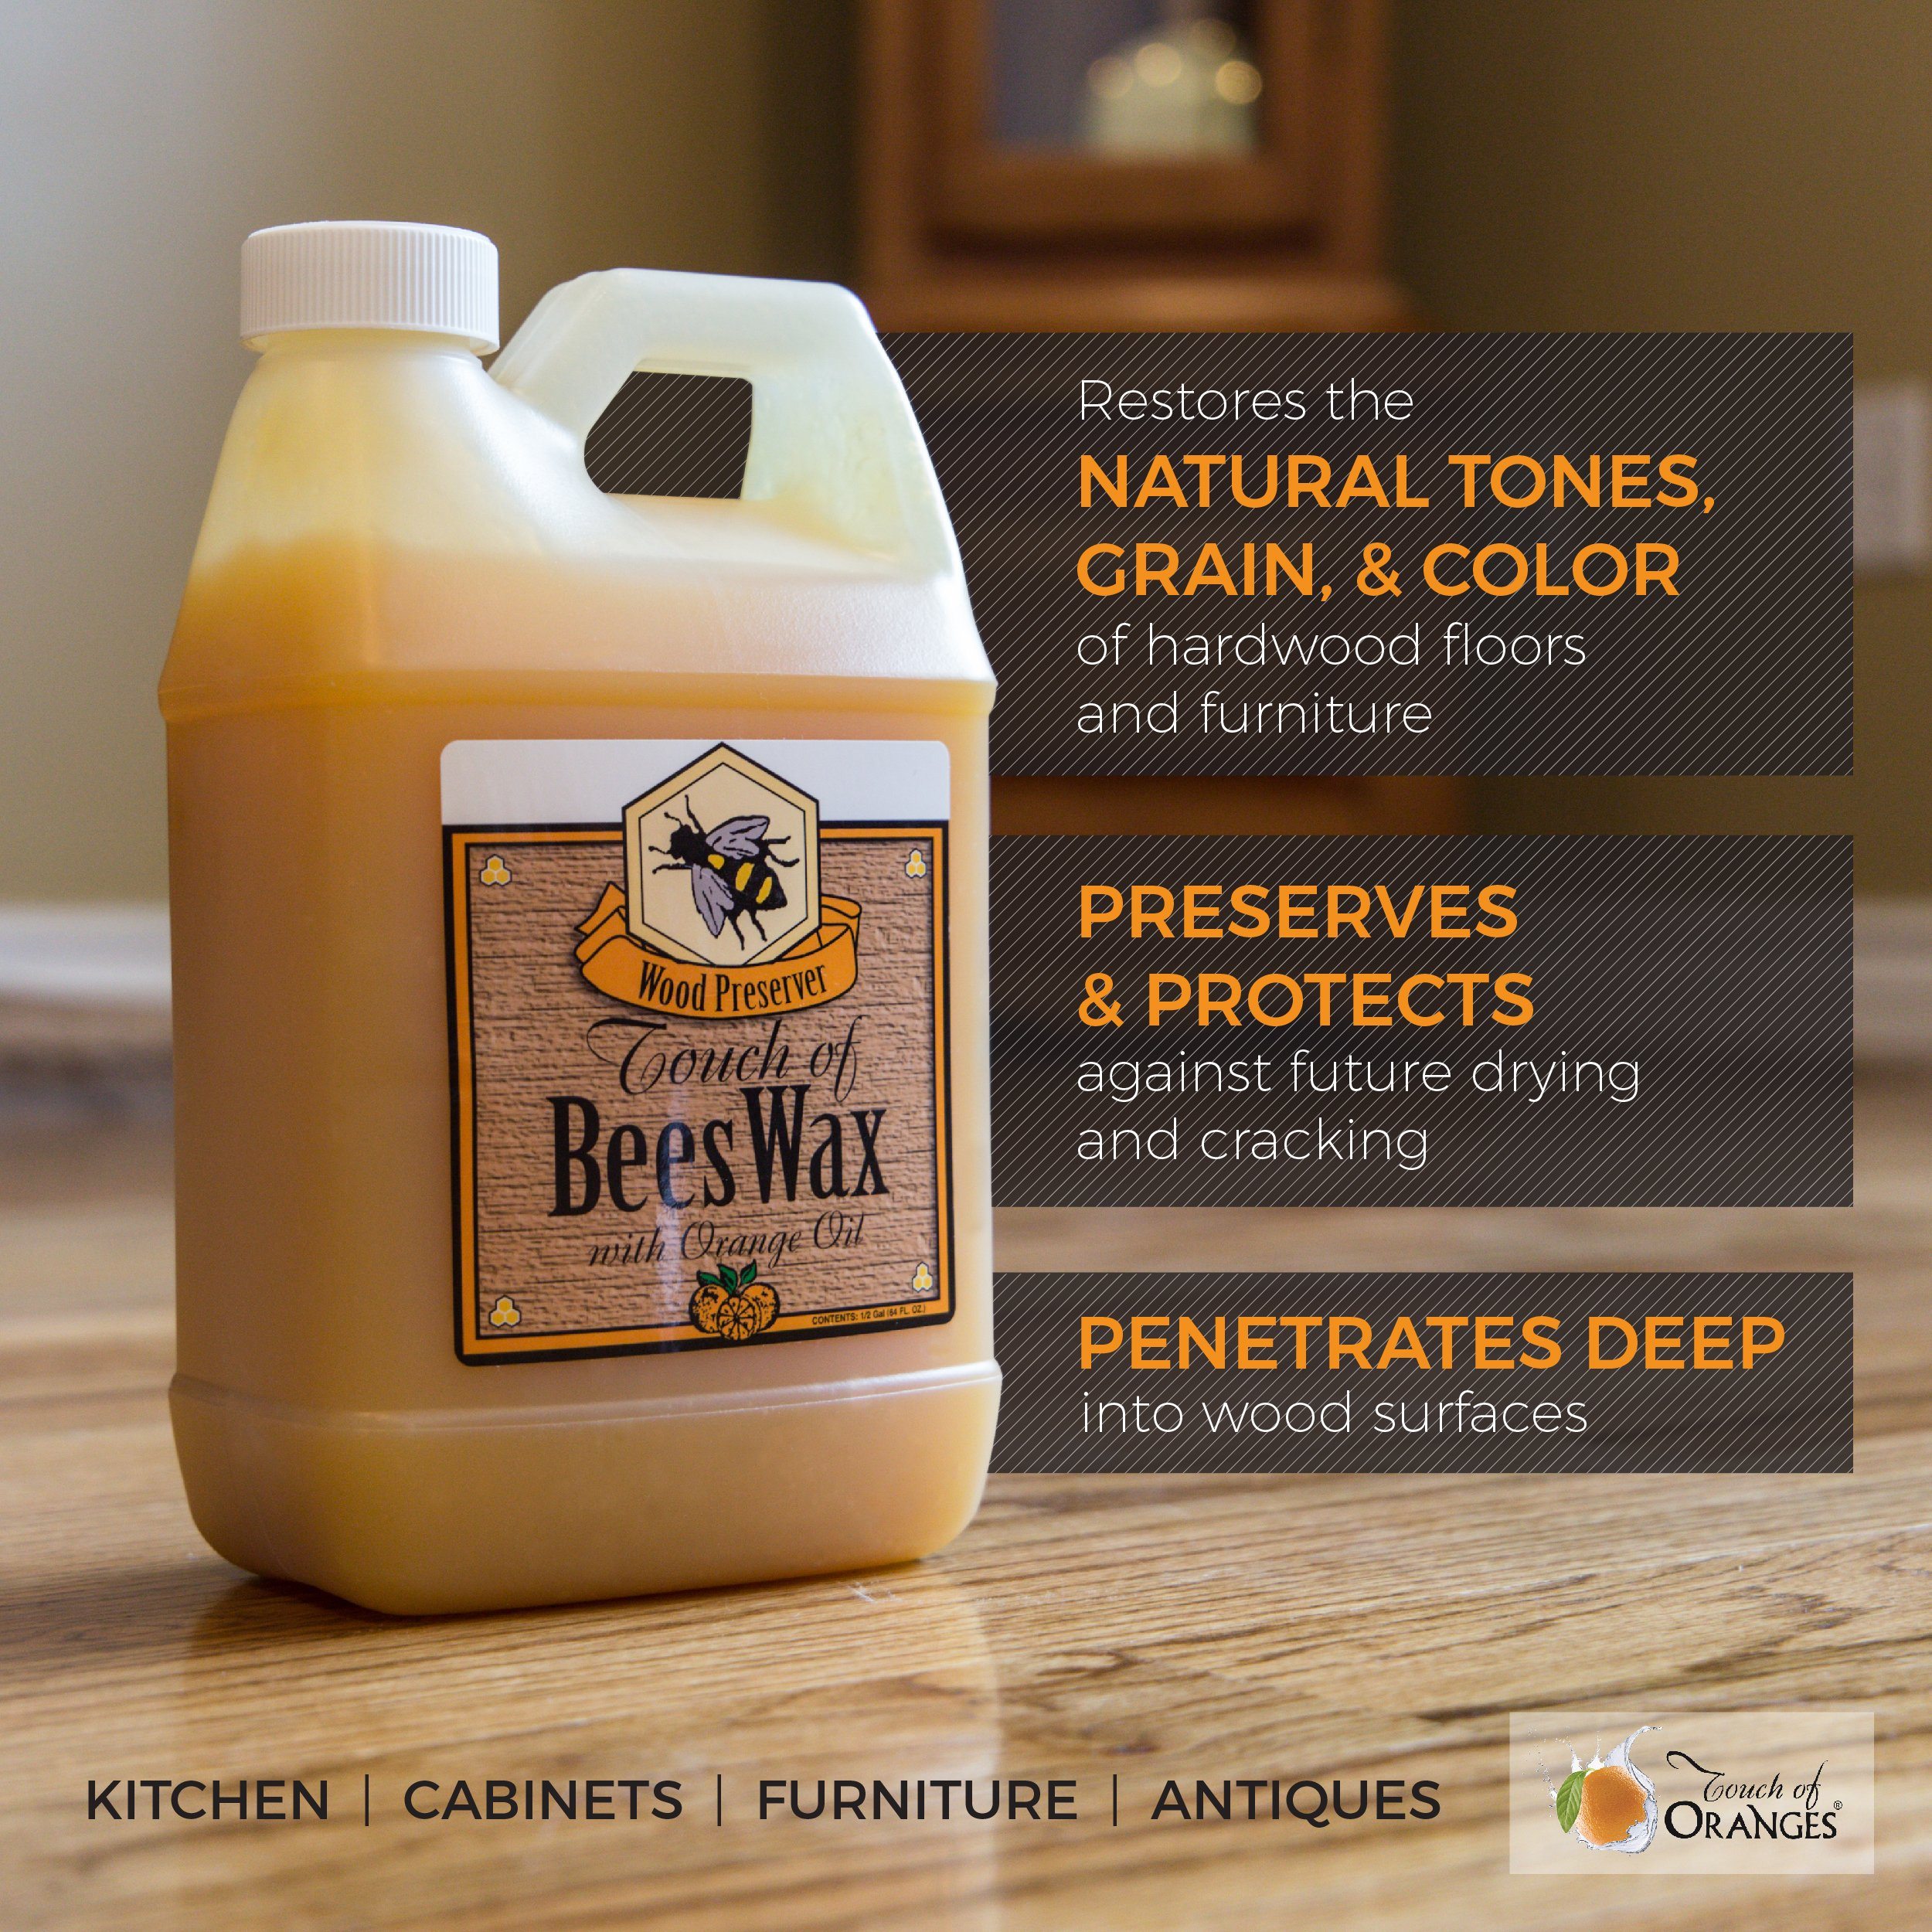 Touch of Oranges Hardwood Floor Cleaner and Touch of Beeswax for Wood Polish Cleaner and Restorer Bundle (1 gallon Cleaner & 1/2 gallon Polish) by Touch Of Oranges (Image #3)